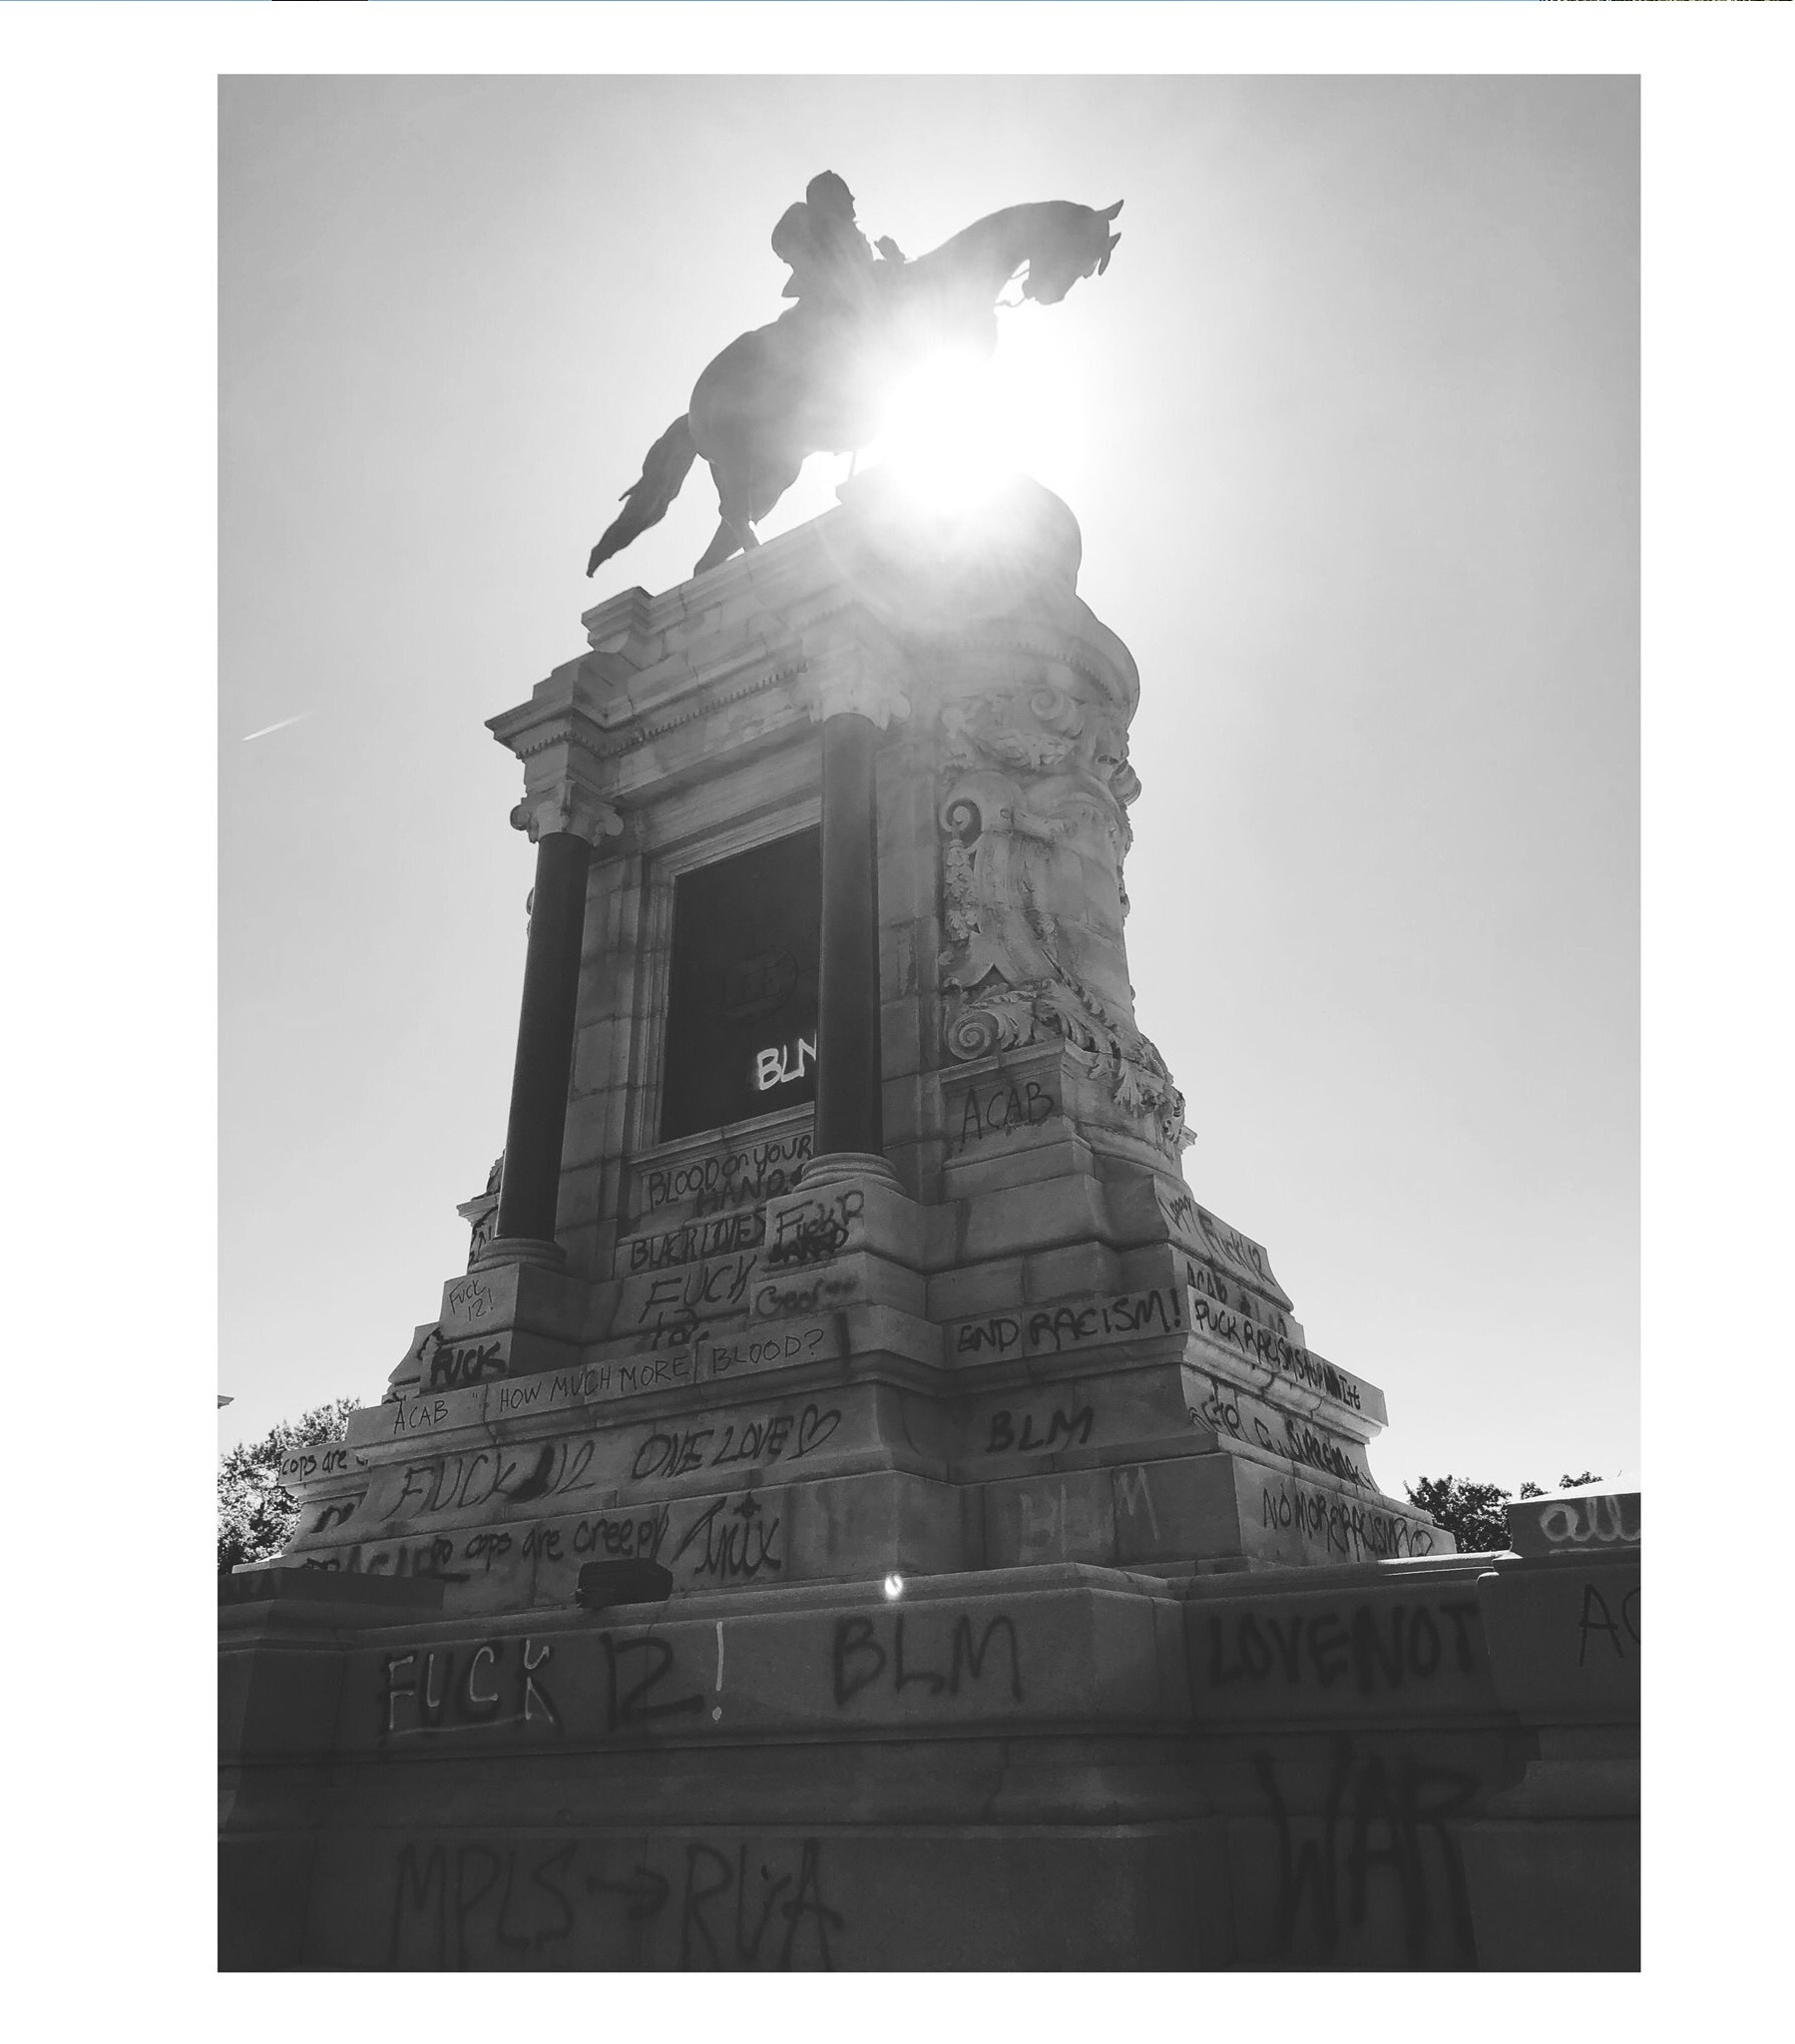 Robert E. Lee Monument vandalized